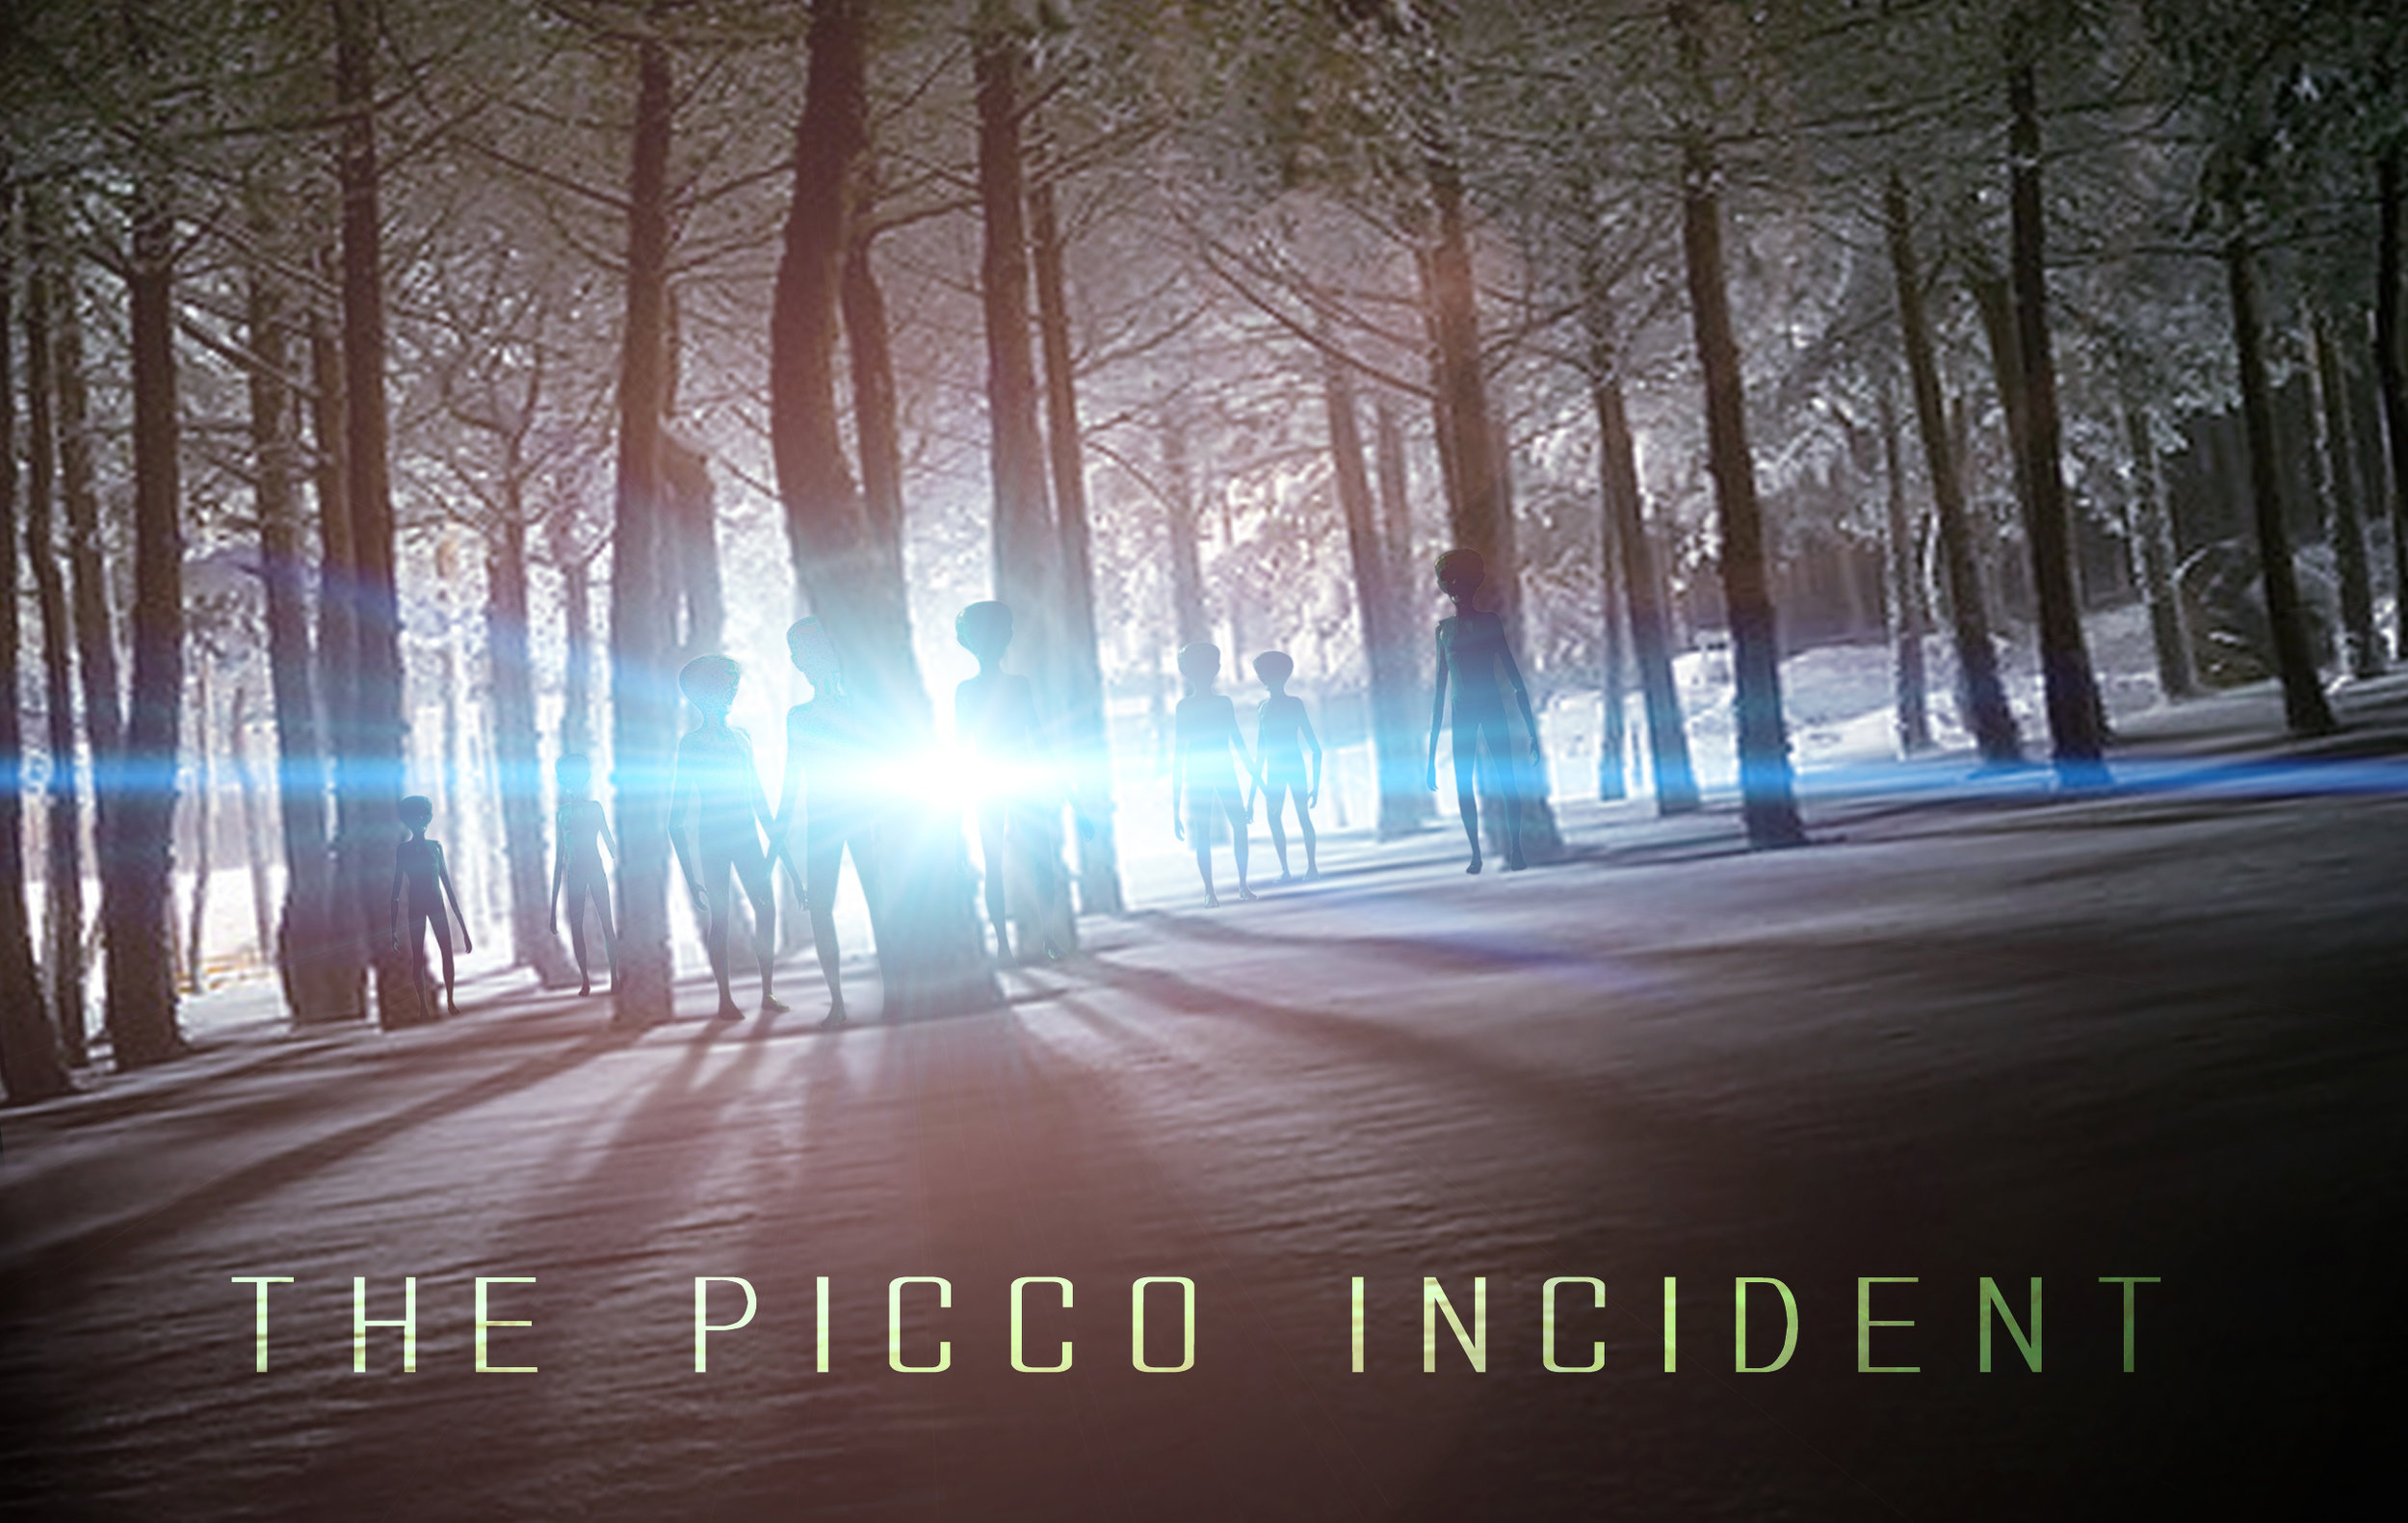 PICCO_concept_poster.jpg